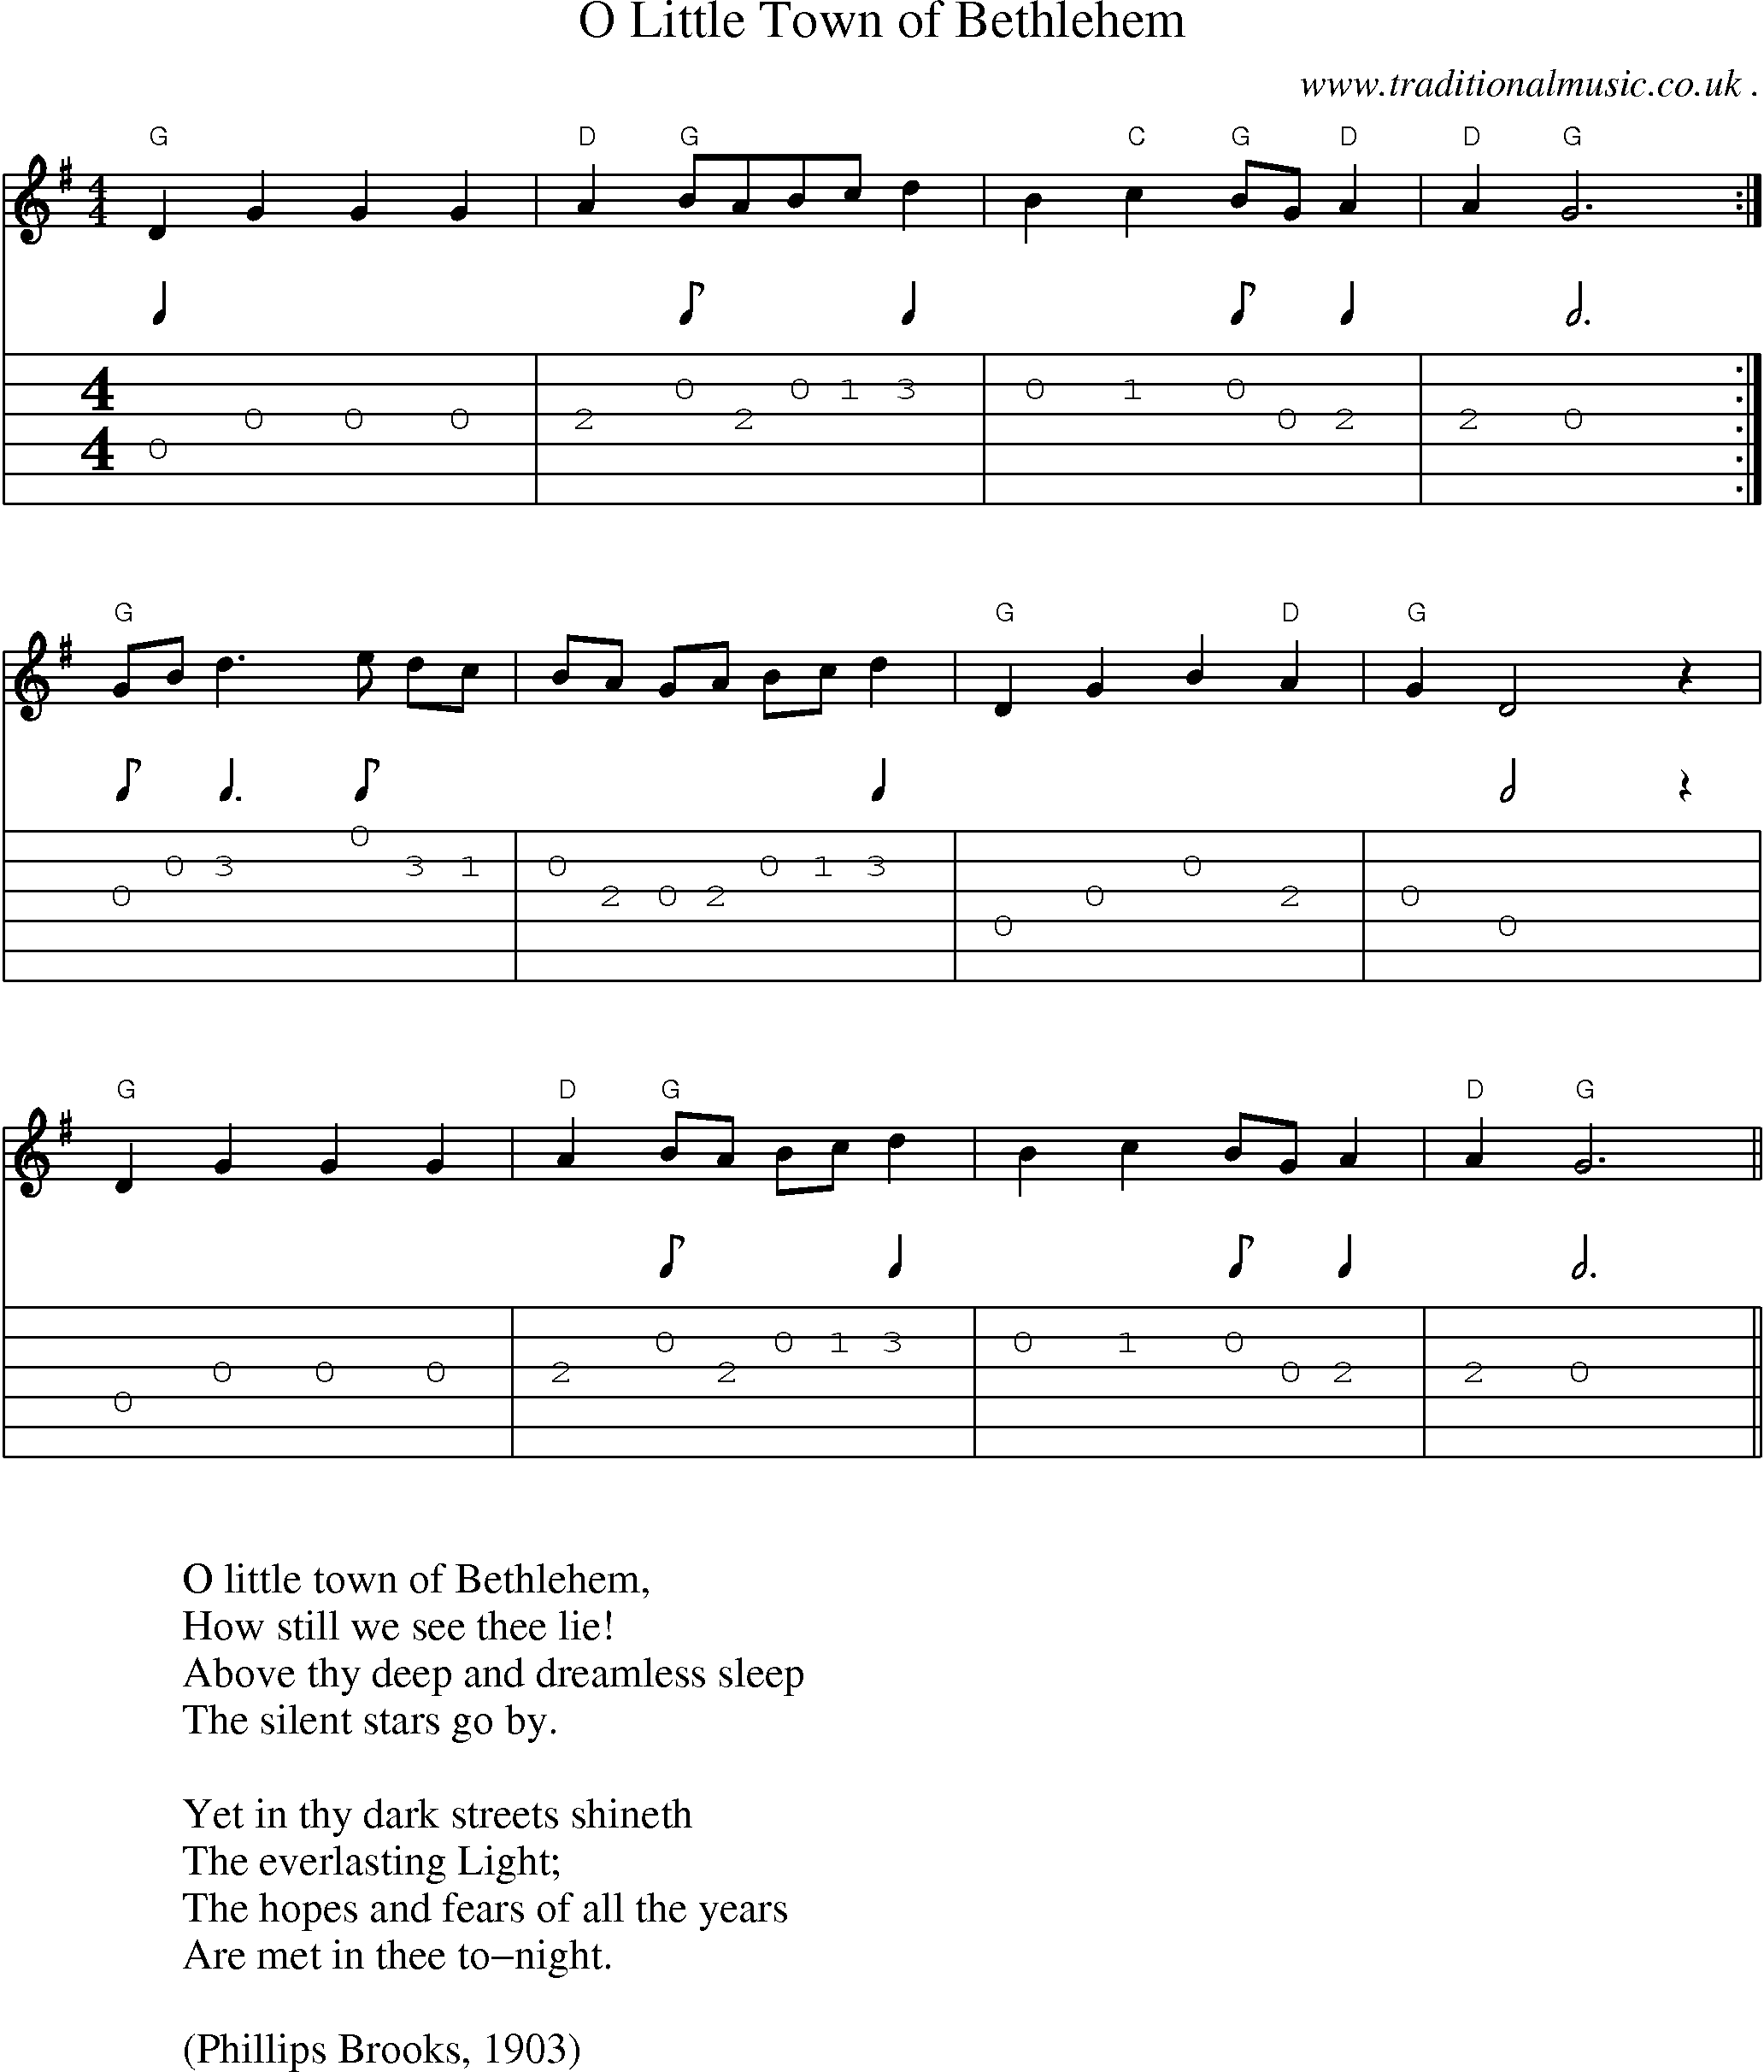 Music Score And Guitar Tabs For O Little Town Of Bethlehem Sheet